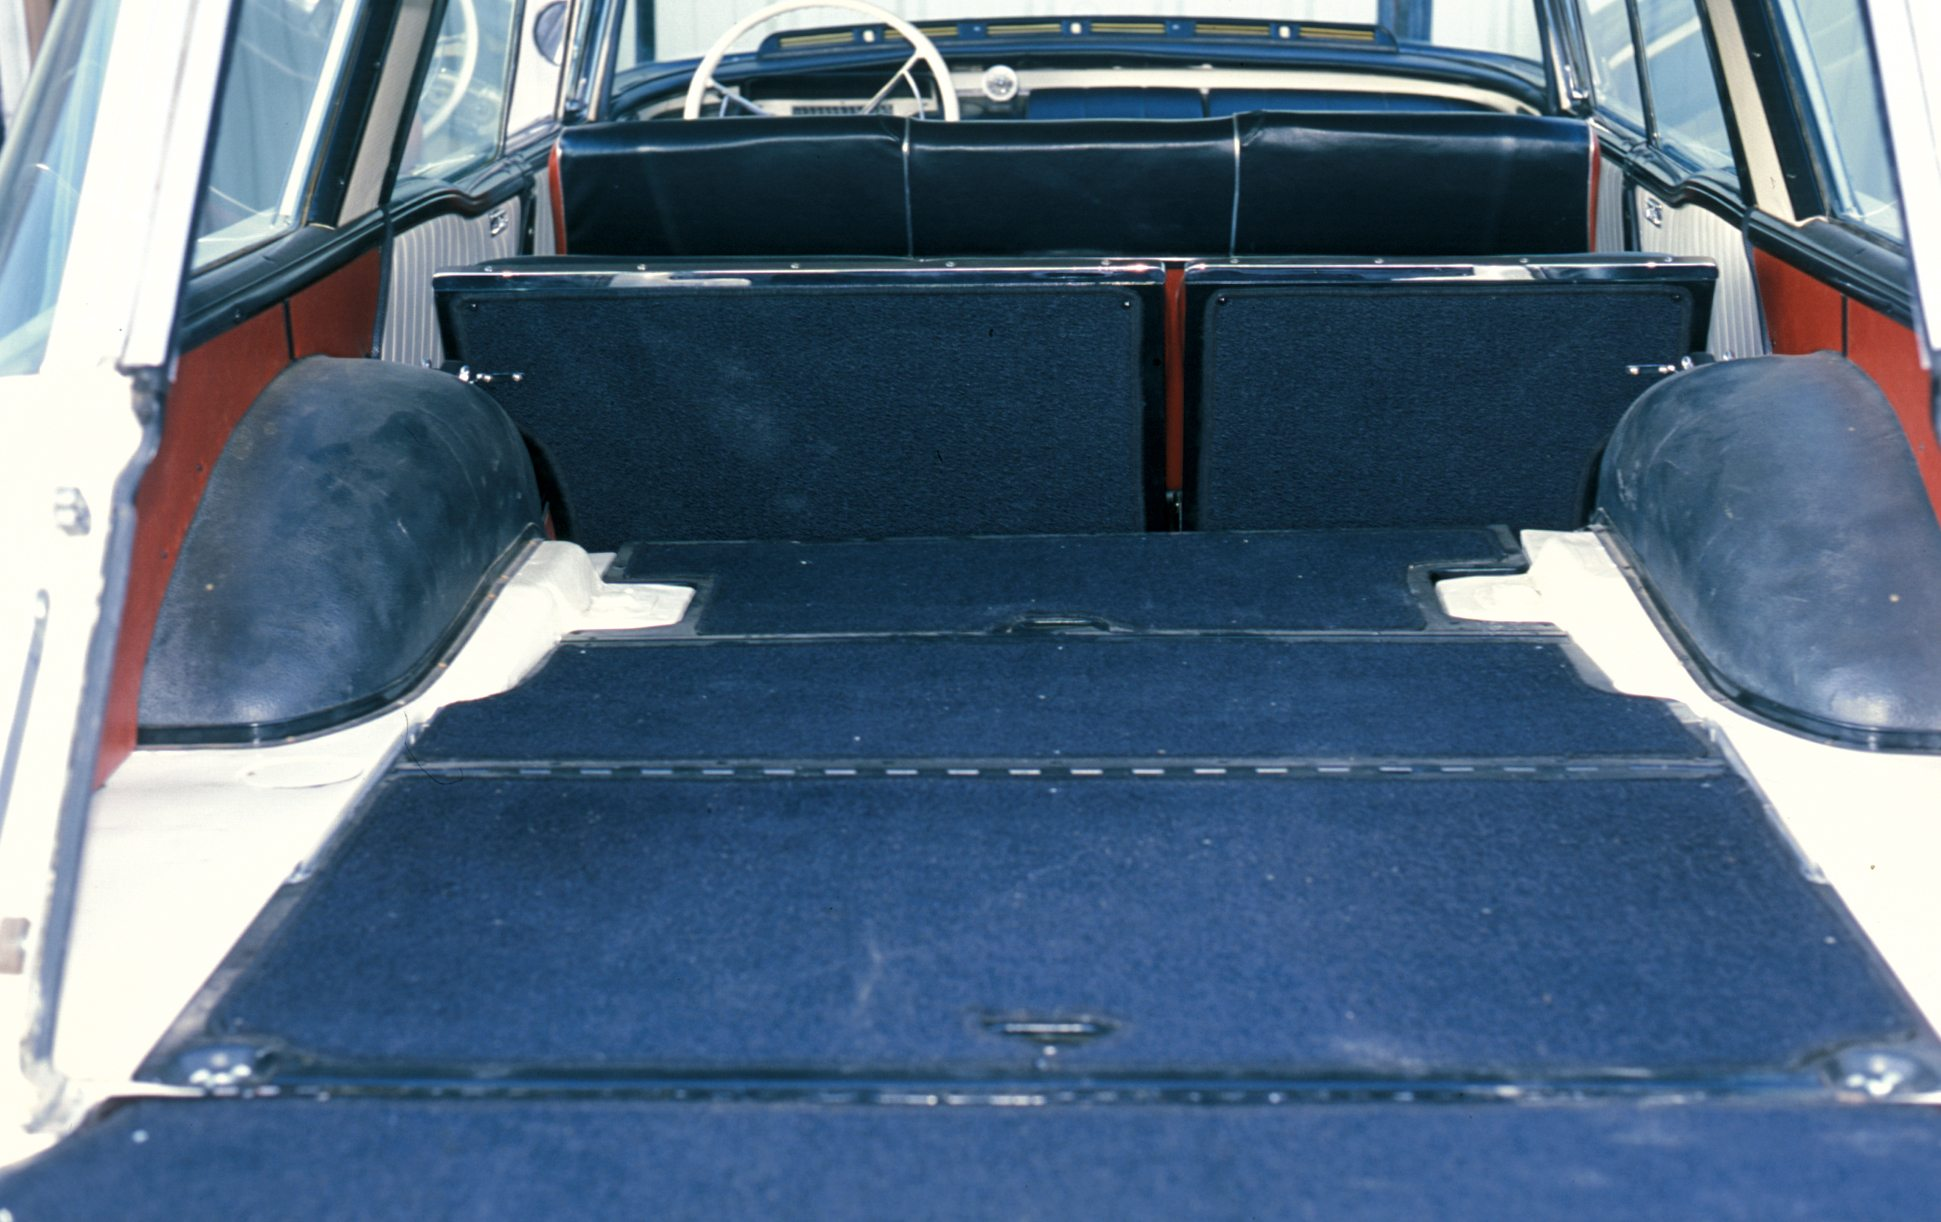 1957 Mercury Colony Park Truck Space With Rear Seats Down